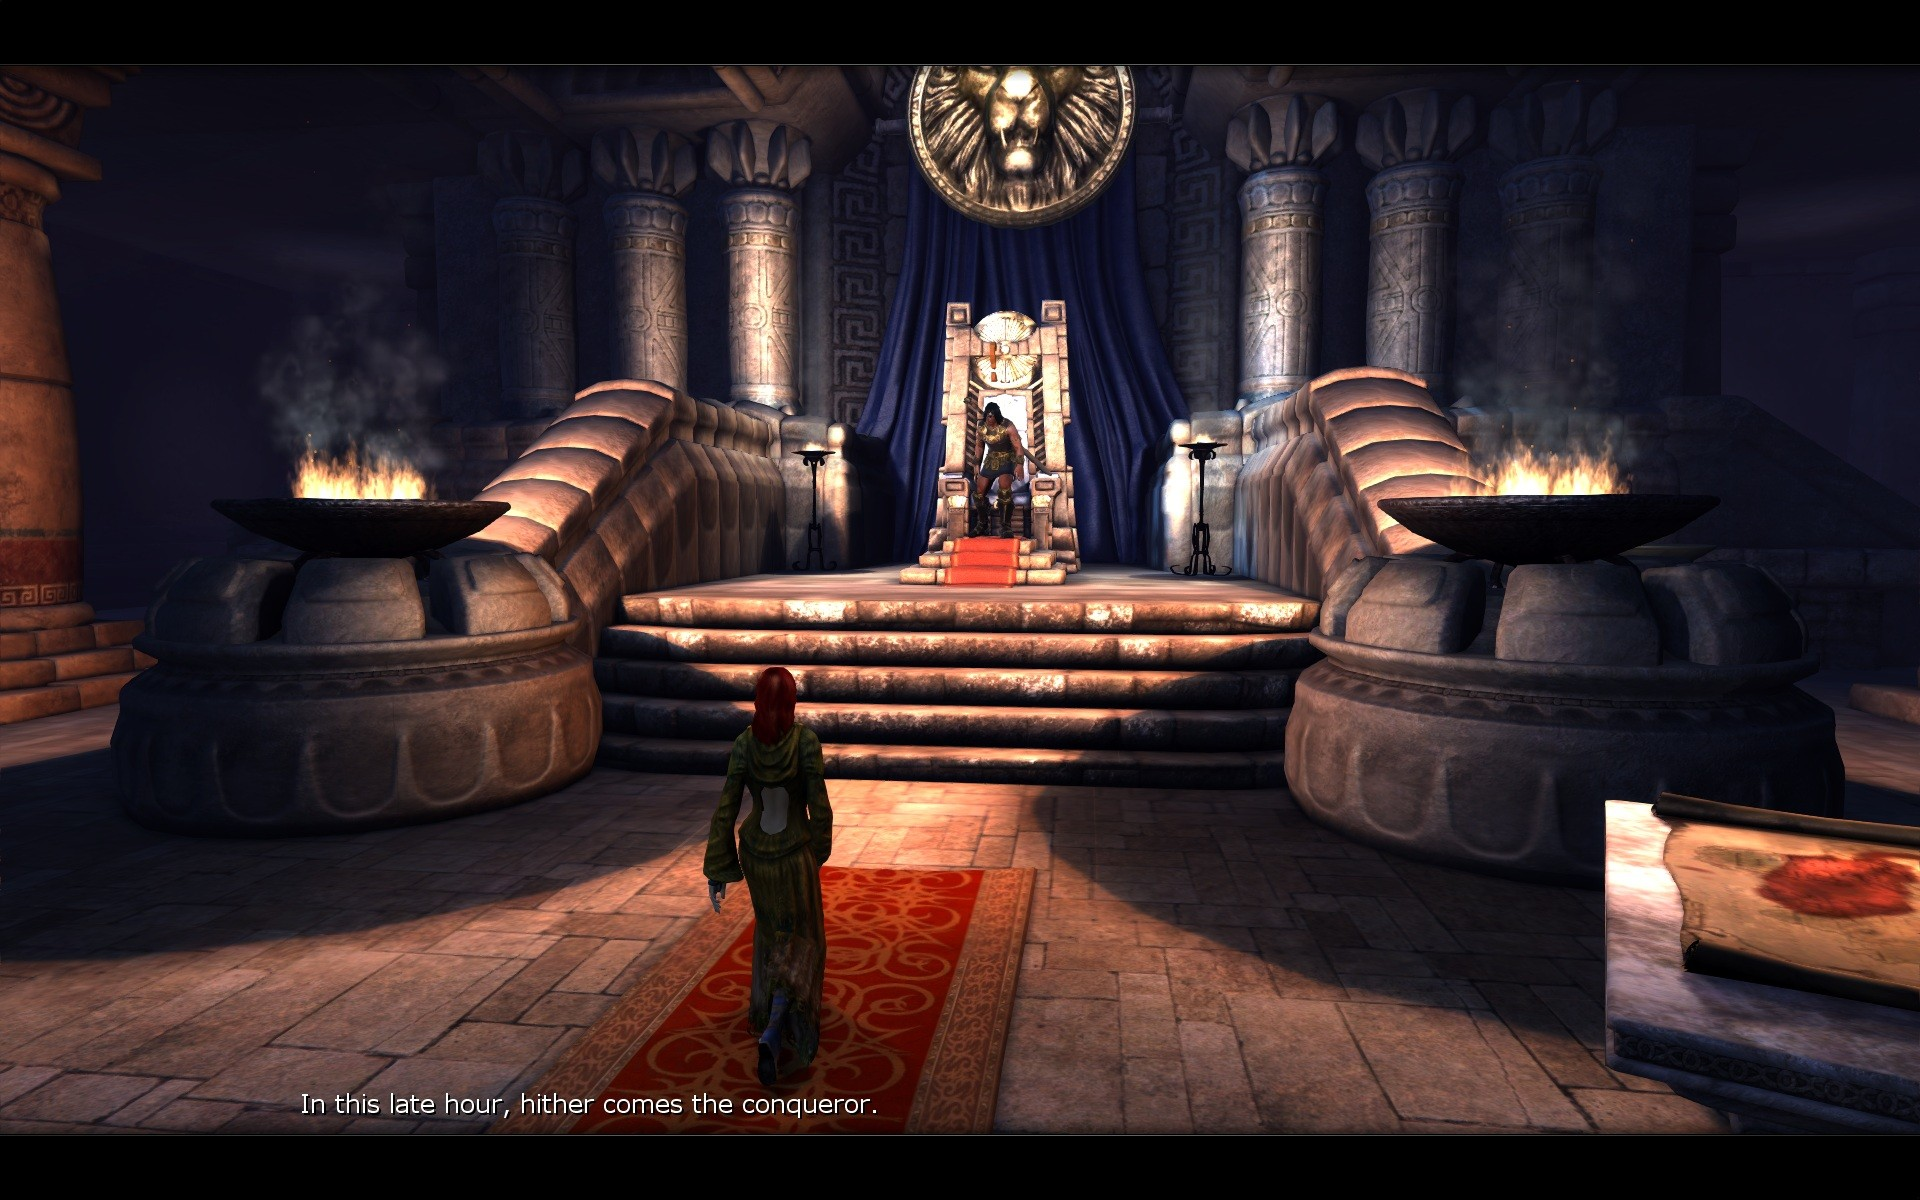 Age of Conan: Unchained - In this late hour, hither comes the conqueror